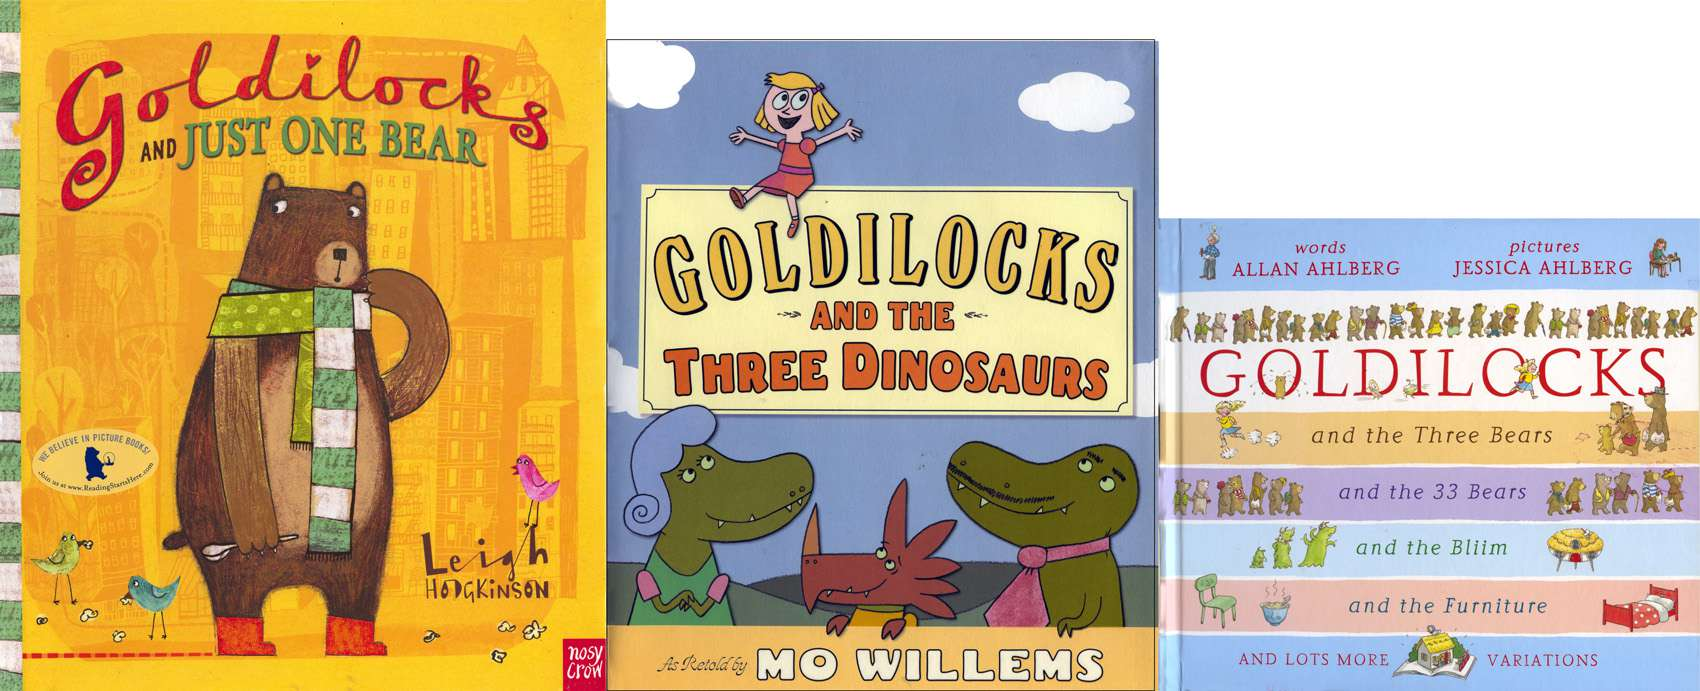 Covers of 3 funny picture book versions of Goldilocks and the Three Bears